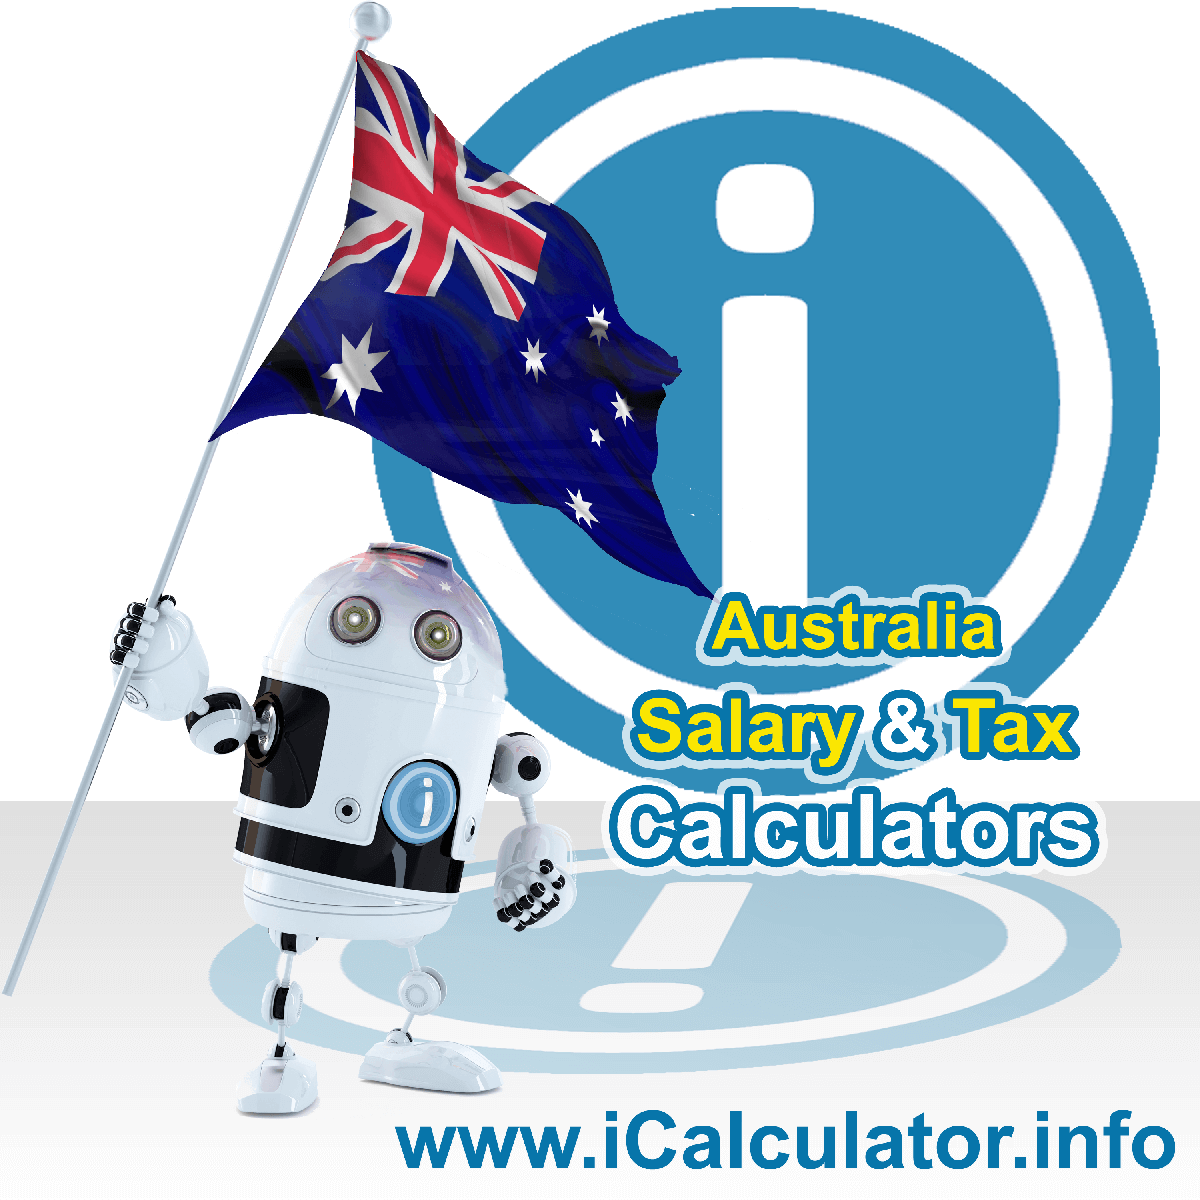 Australia Tax Calculator. This image shows the Australia flag and information relating to the tax formula for the Australia Tax Calculator